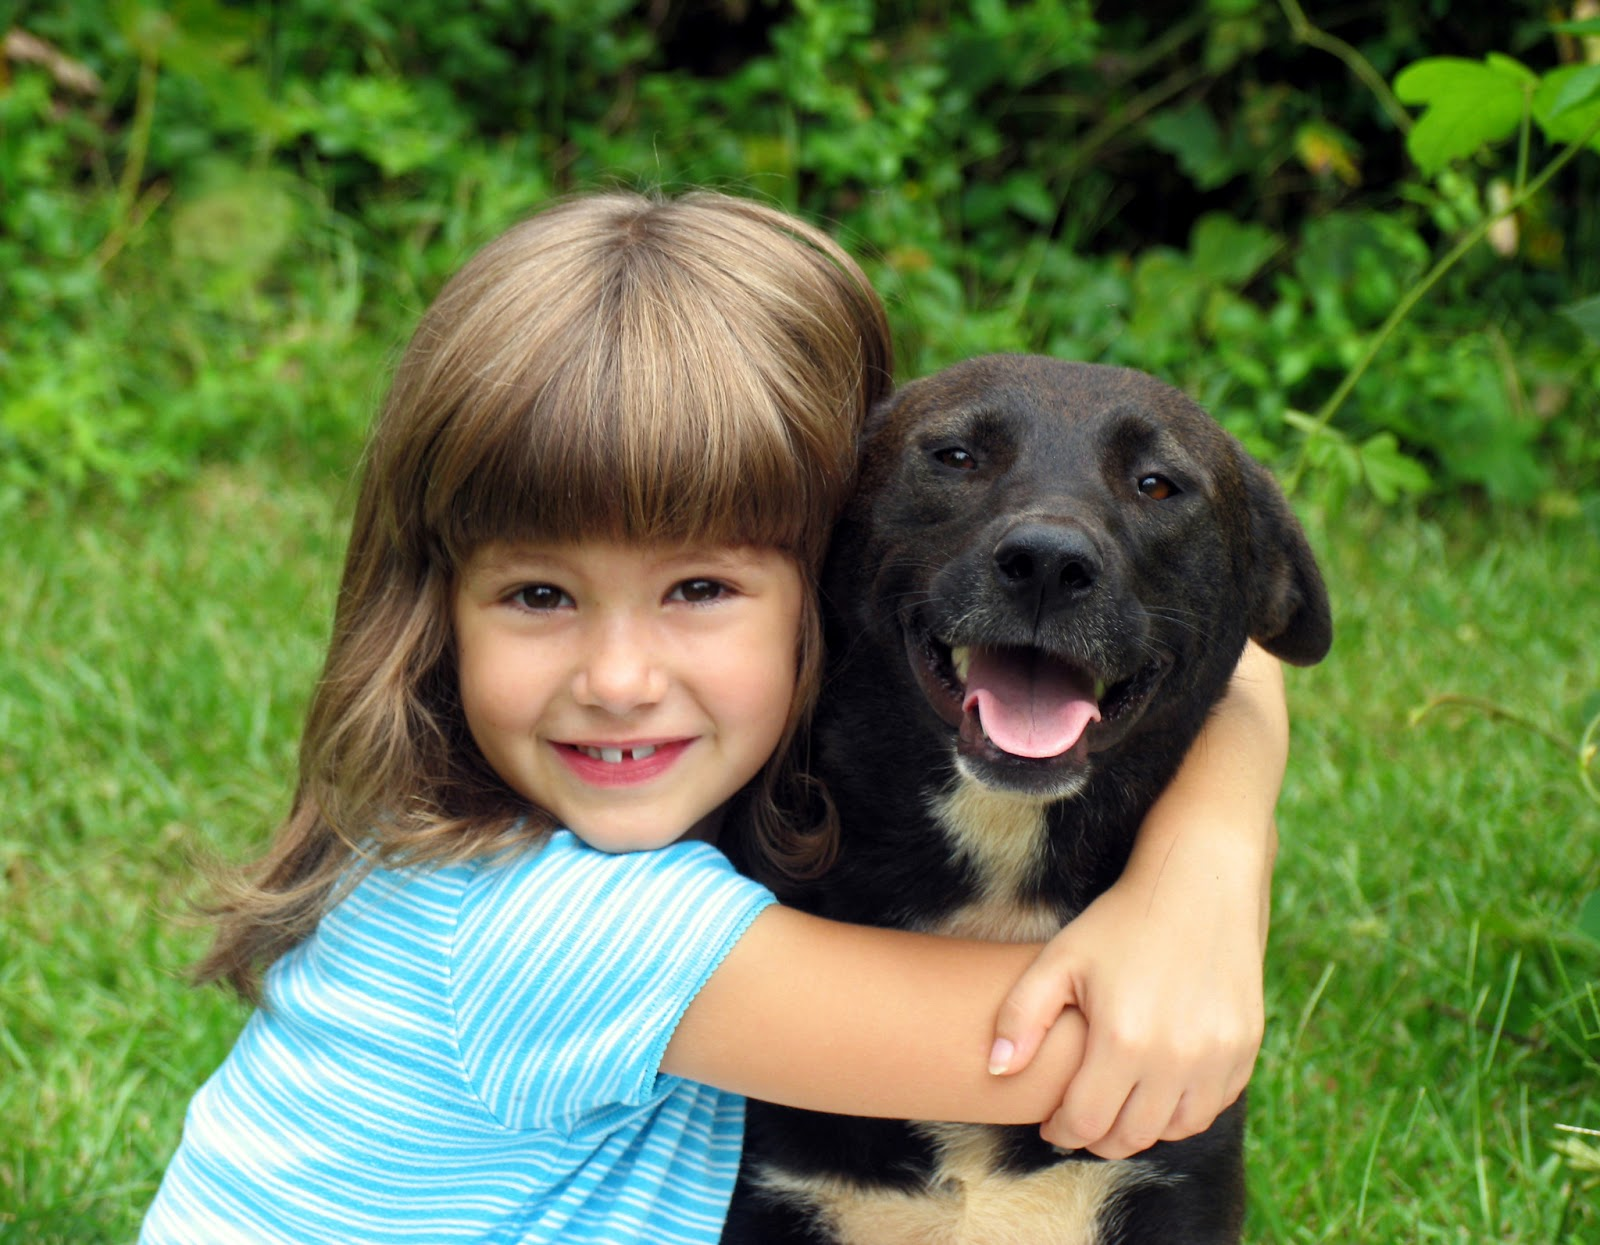 A Dog's Life: Kids and Dogs